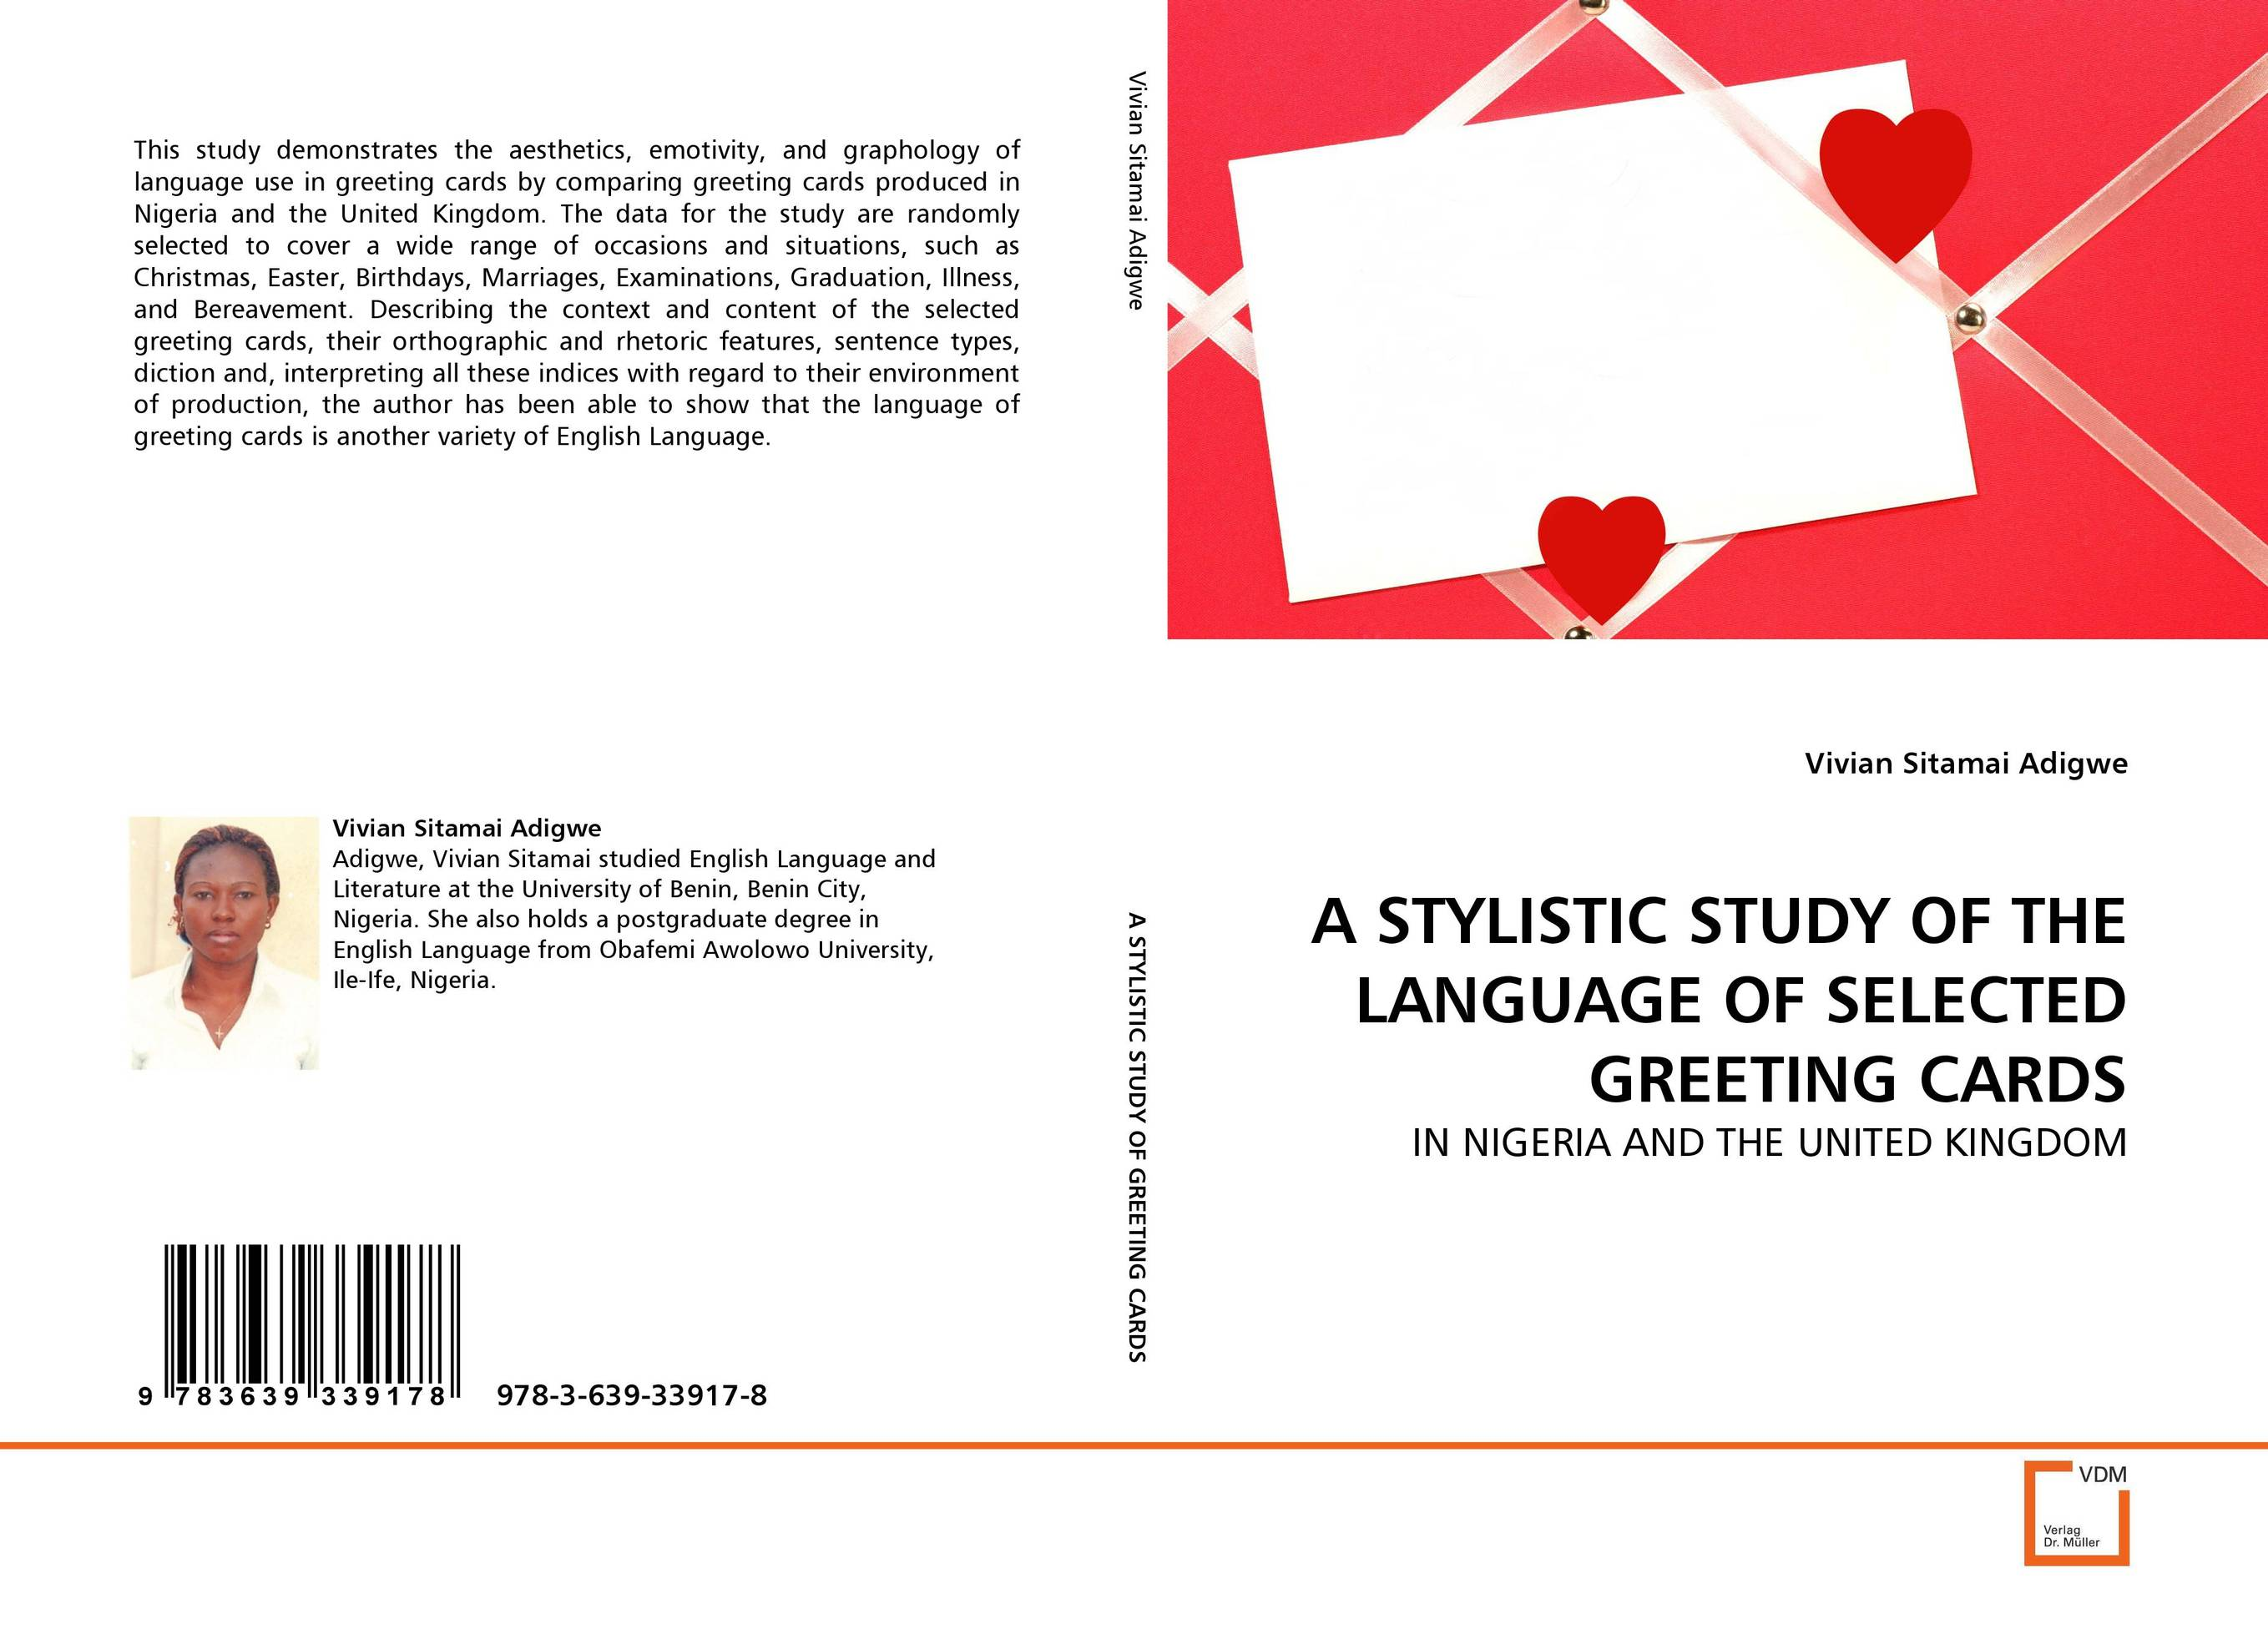 A STYLISTIC STUDY OF THE LANGUAGE OF SELECTED GREETING CARDS e hutchins culture and inference – a trobriand case study